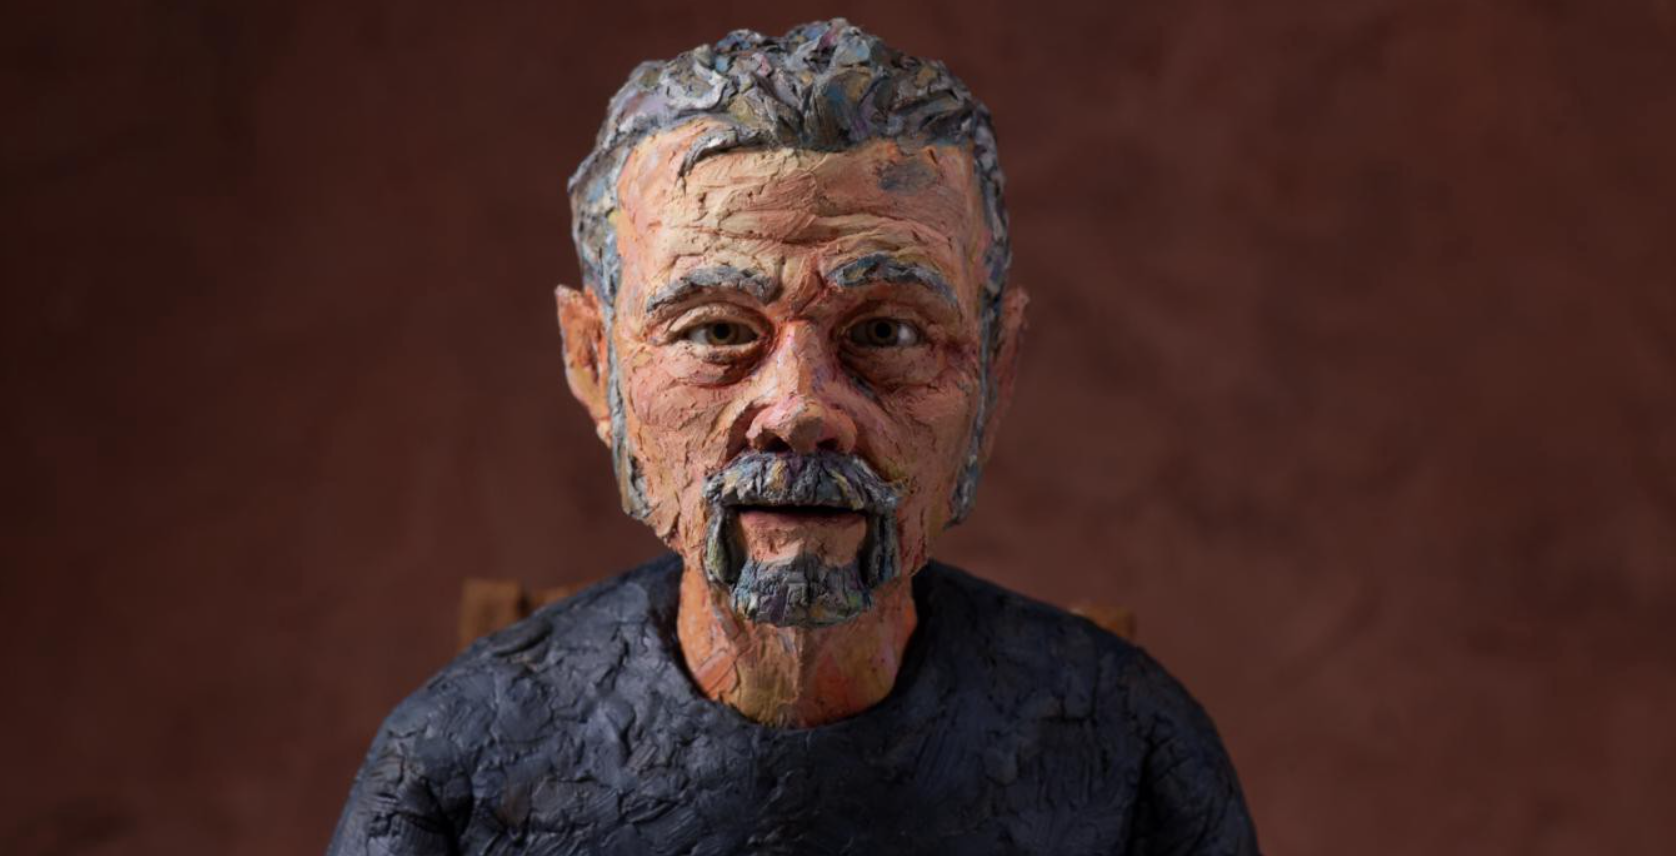 A claymation rendering of an aging white man.